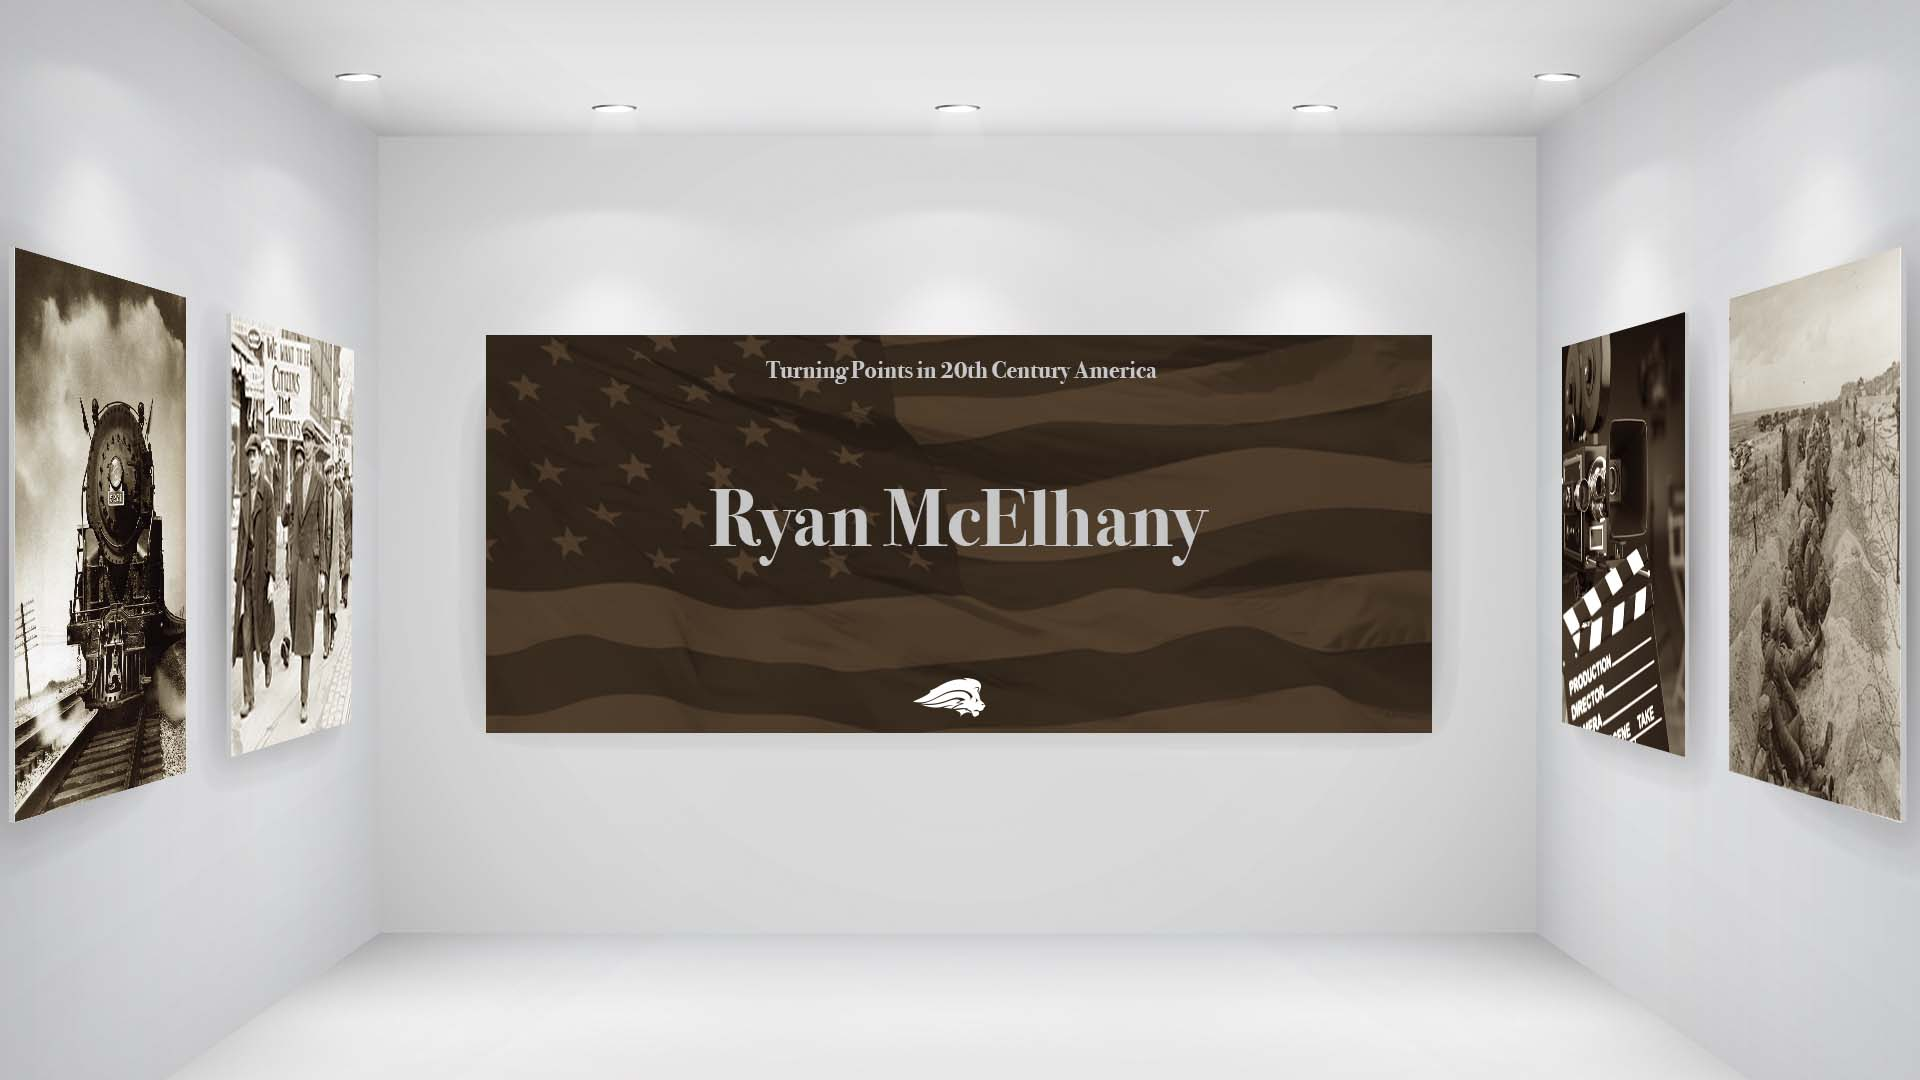 Ryan McElhany, MBA, explains the evolution of marketing, advertising and advertising law in the 1900s and how they were turning points in the 20th century.